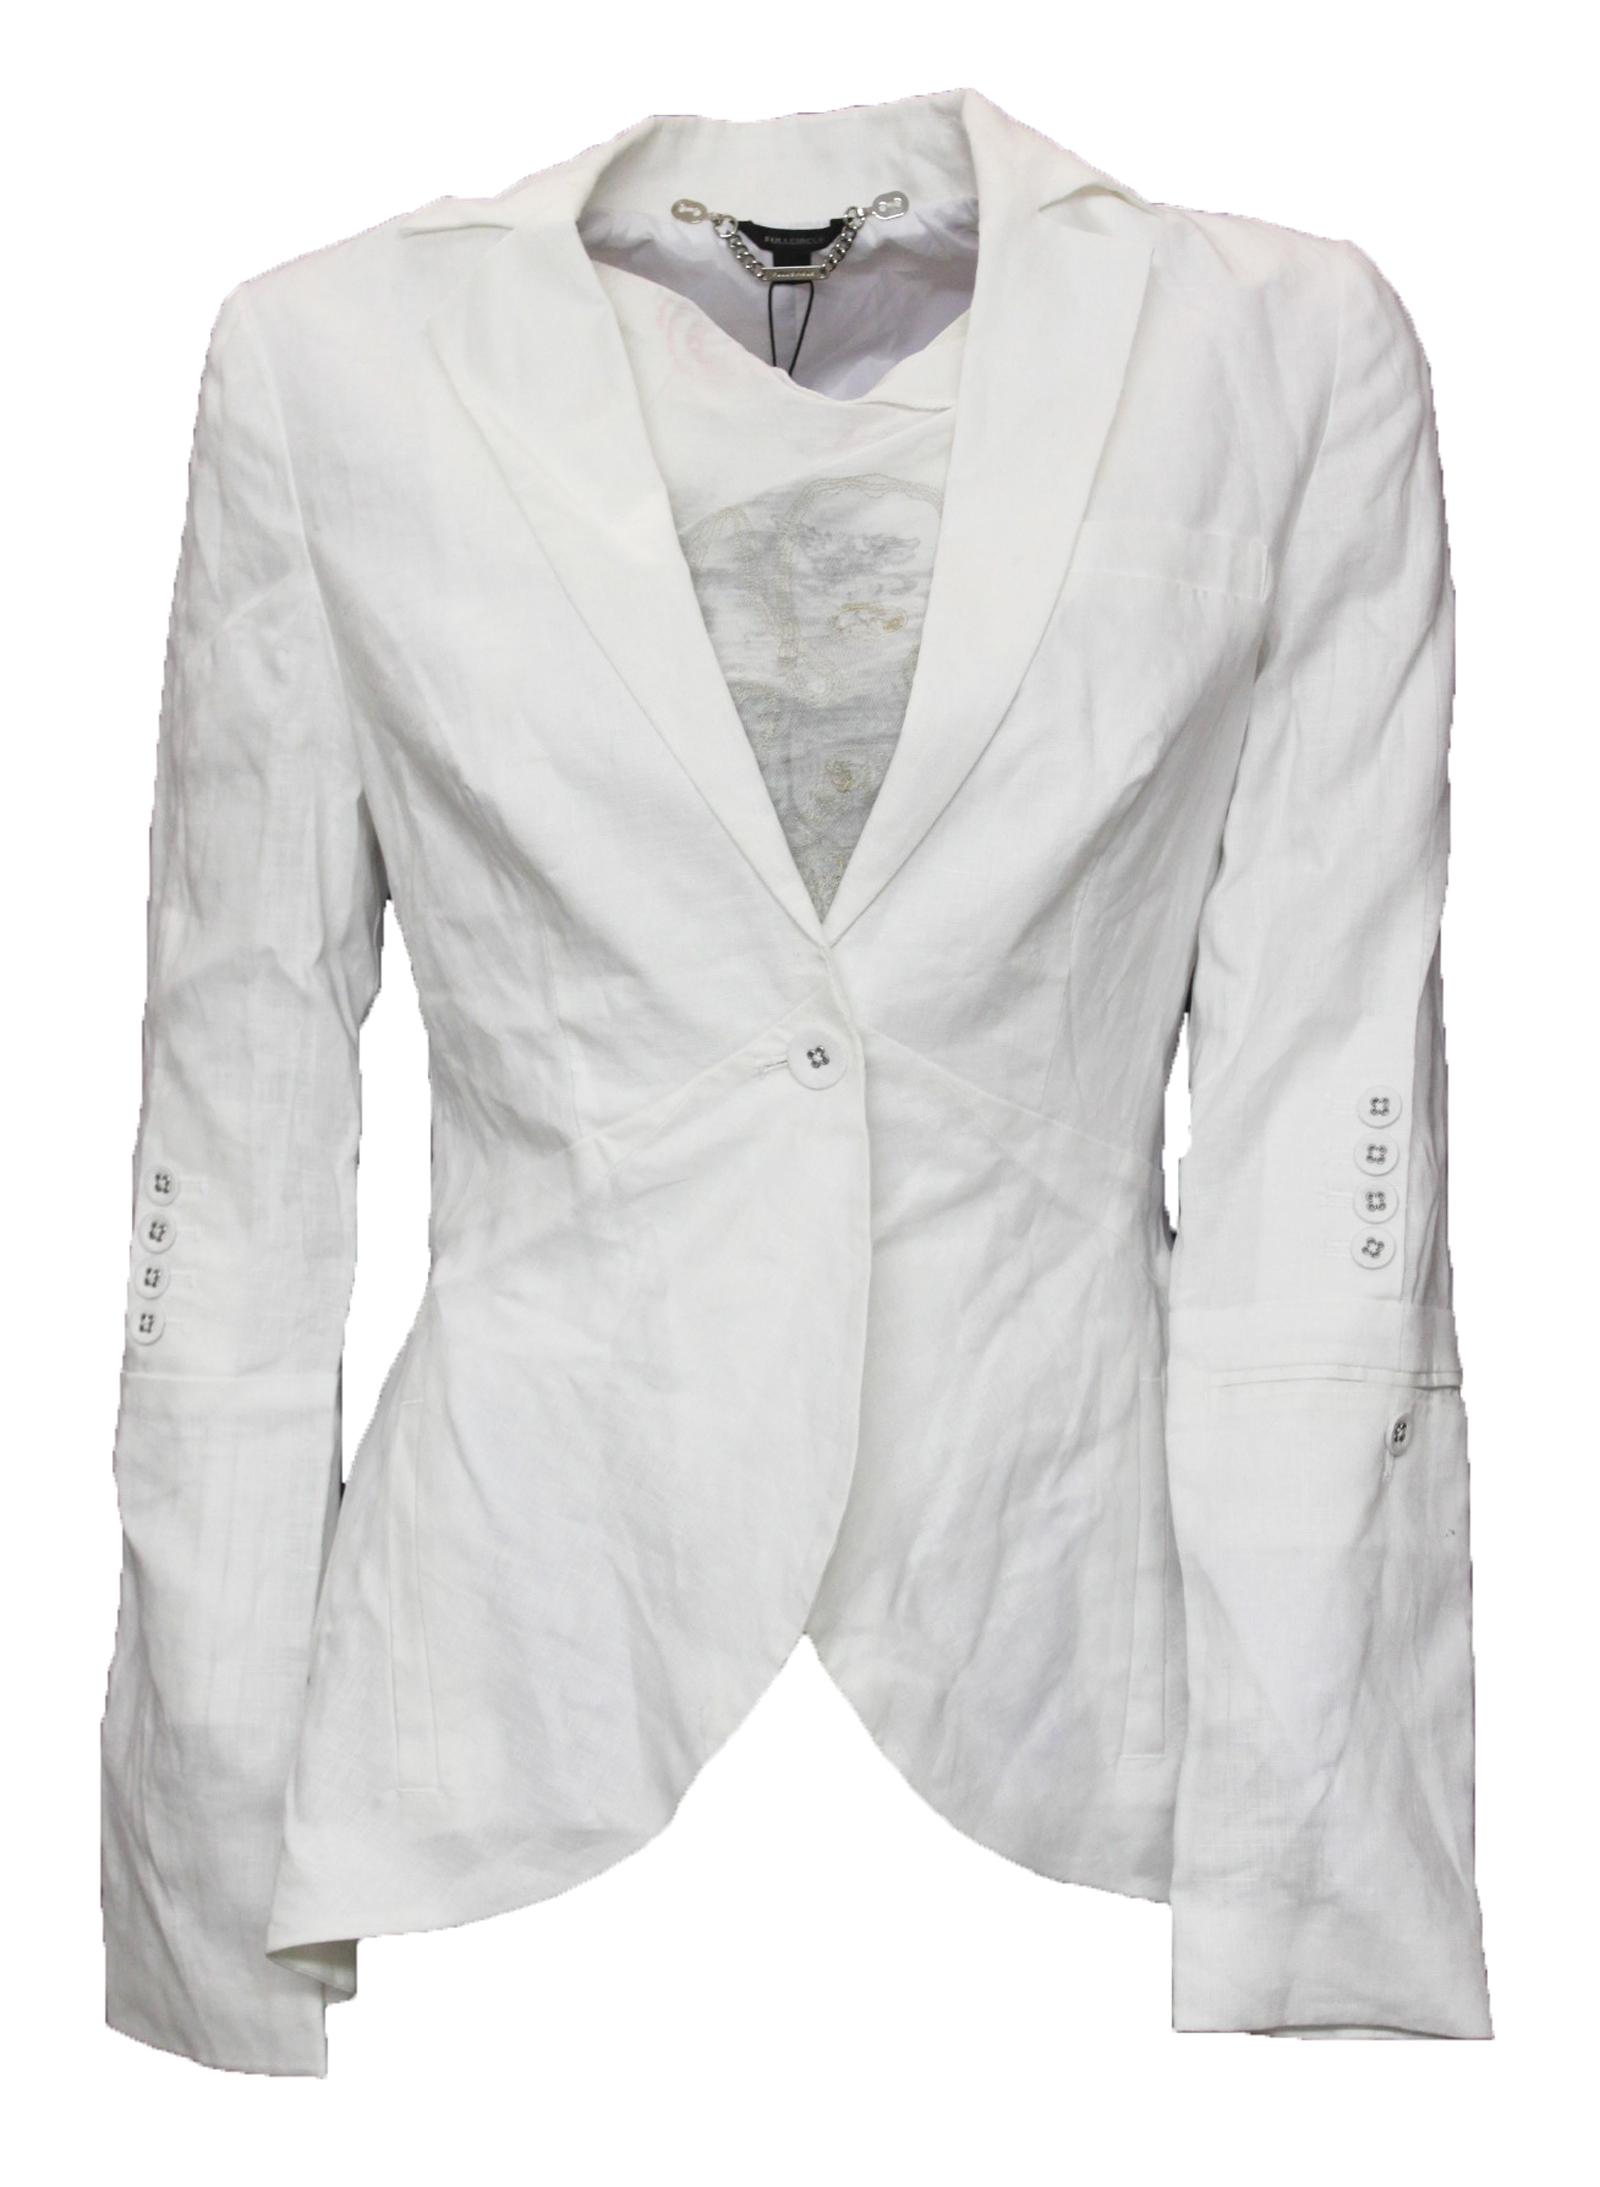 Linen blazers for women are timeless pieces that will be worn around for generations. The linen blazer for women is the definition of what a lady should wear to achieve a sophisticated appearance. Our women's linen blazer will restore confidence, emit class, and bring a lifetime of happiness to a Fashionista's closet.